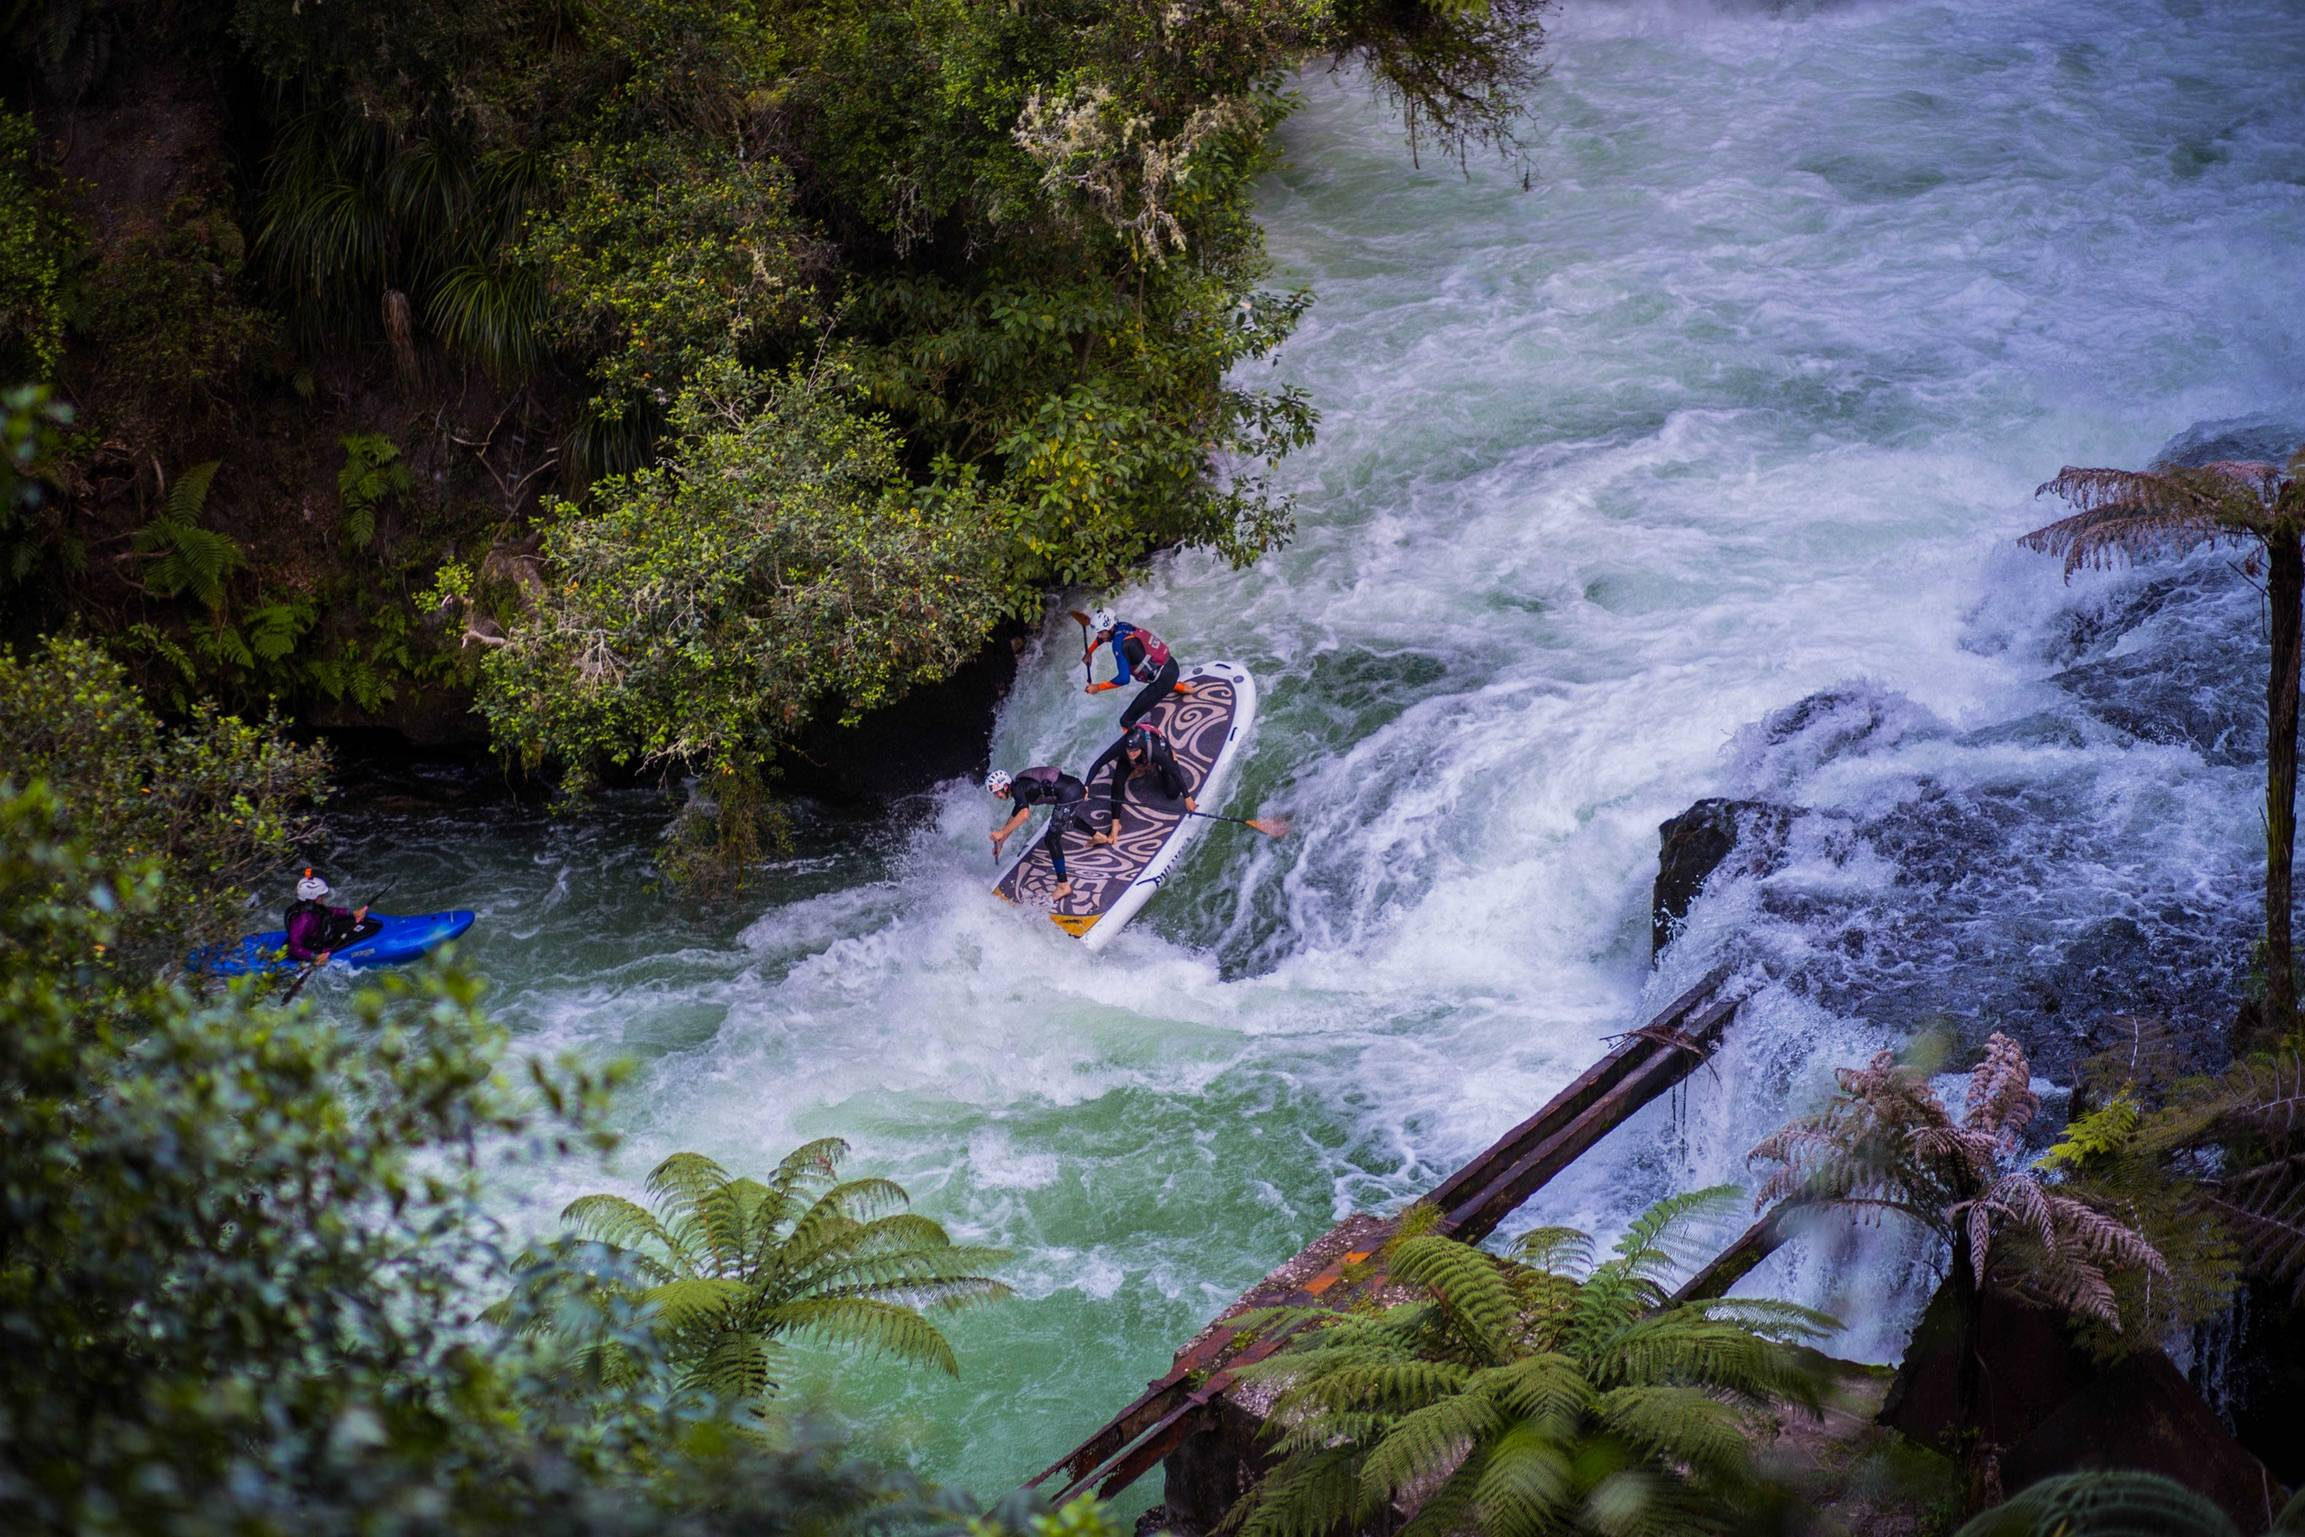 The best giant paddle board out there. Oahu Nui Pau Hana SUP in New Zealand River